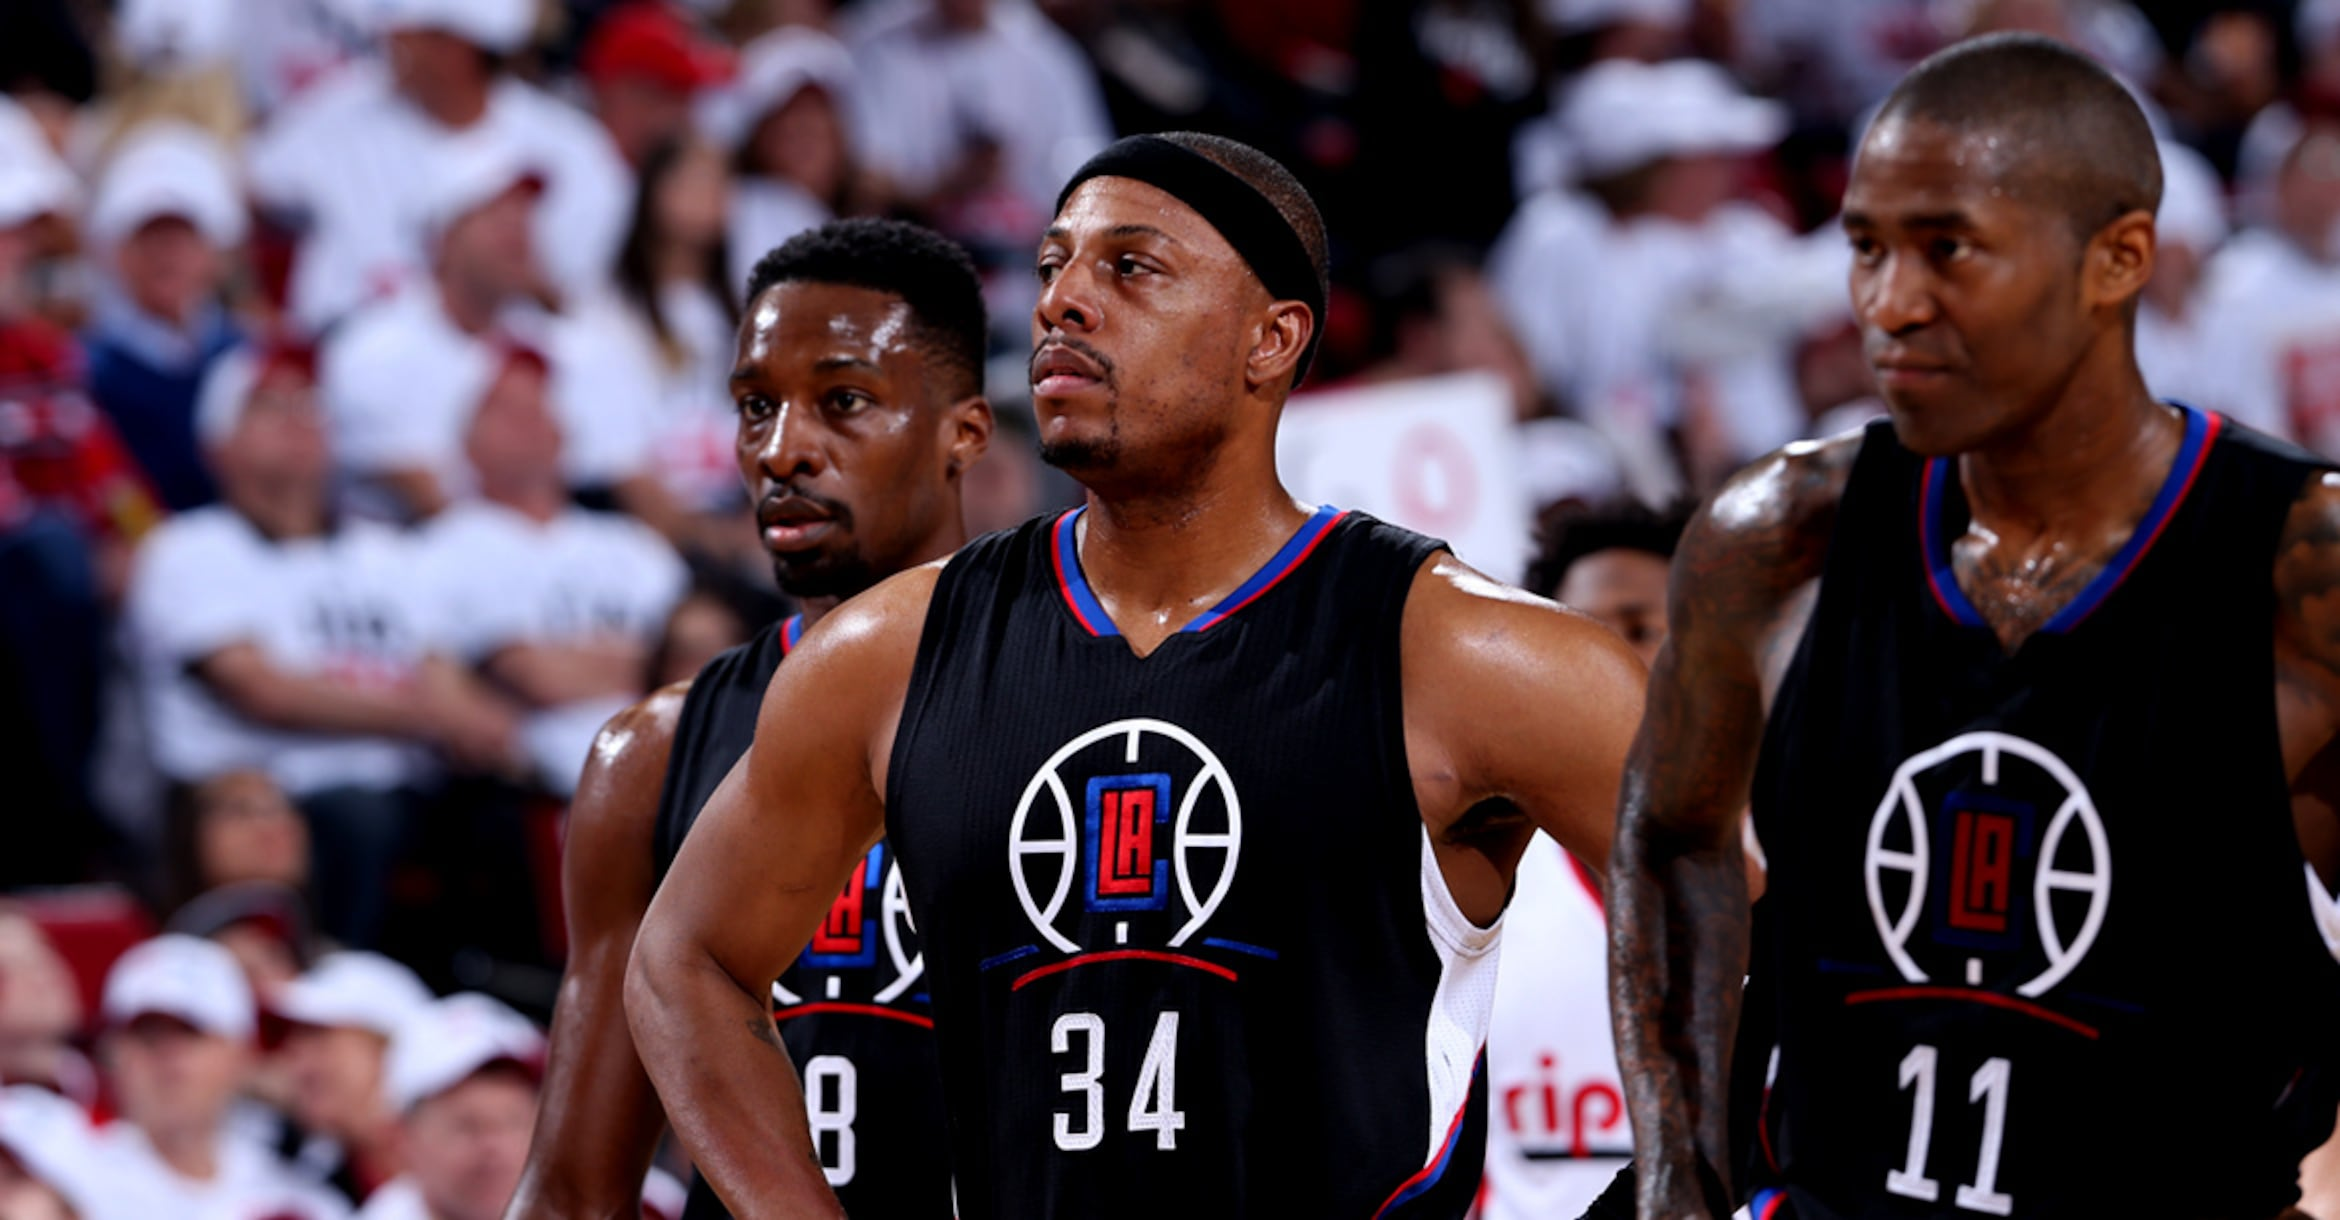 Image of Paul Pierce.